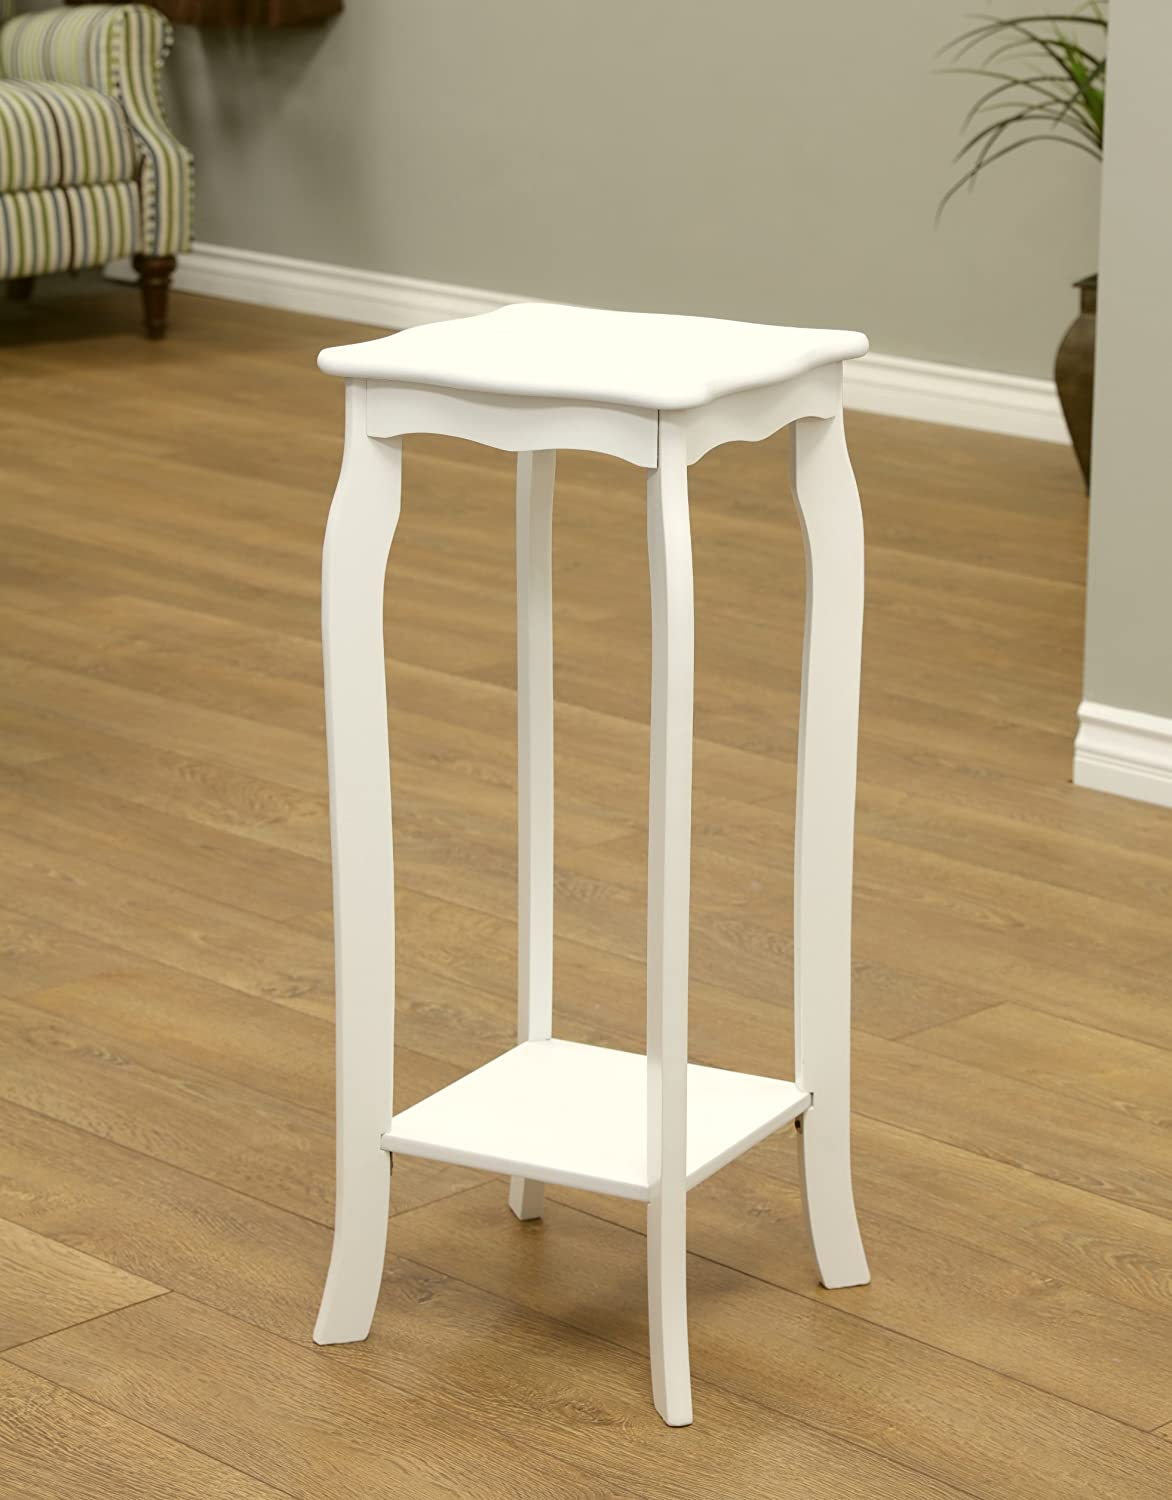 Frenchi Home Furnishing 2 Tier Plant Stand Frenchi Furniture JW118